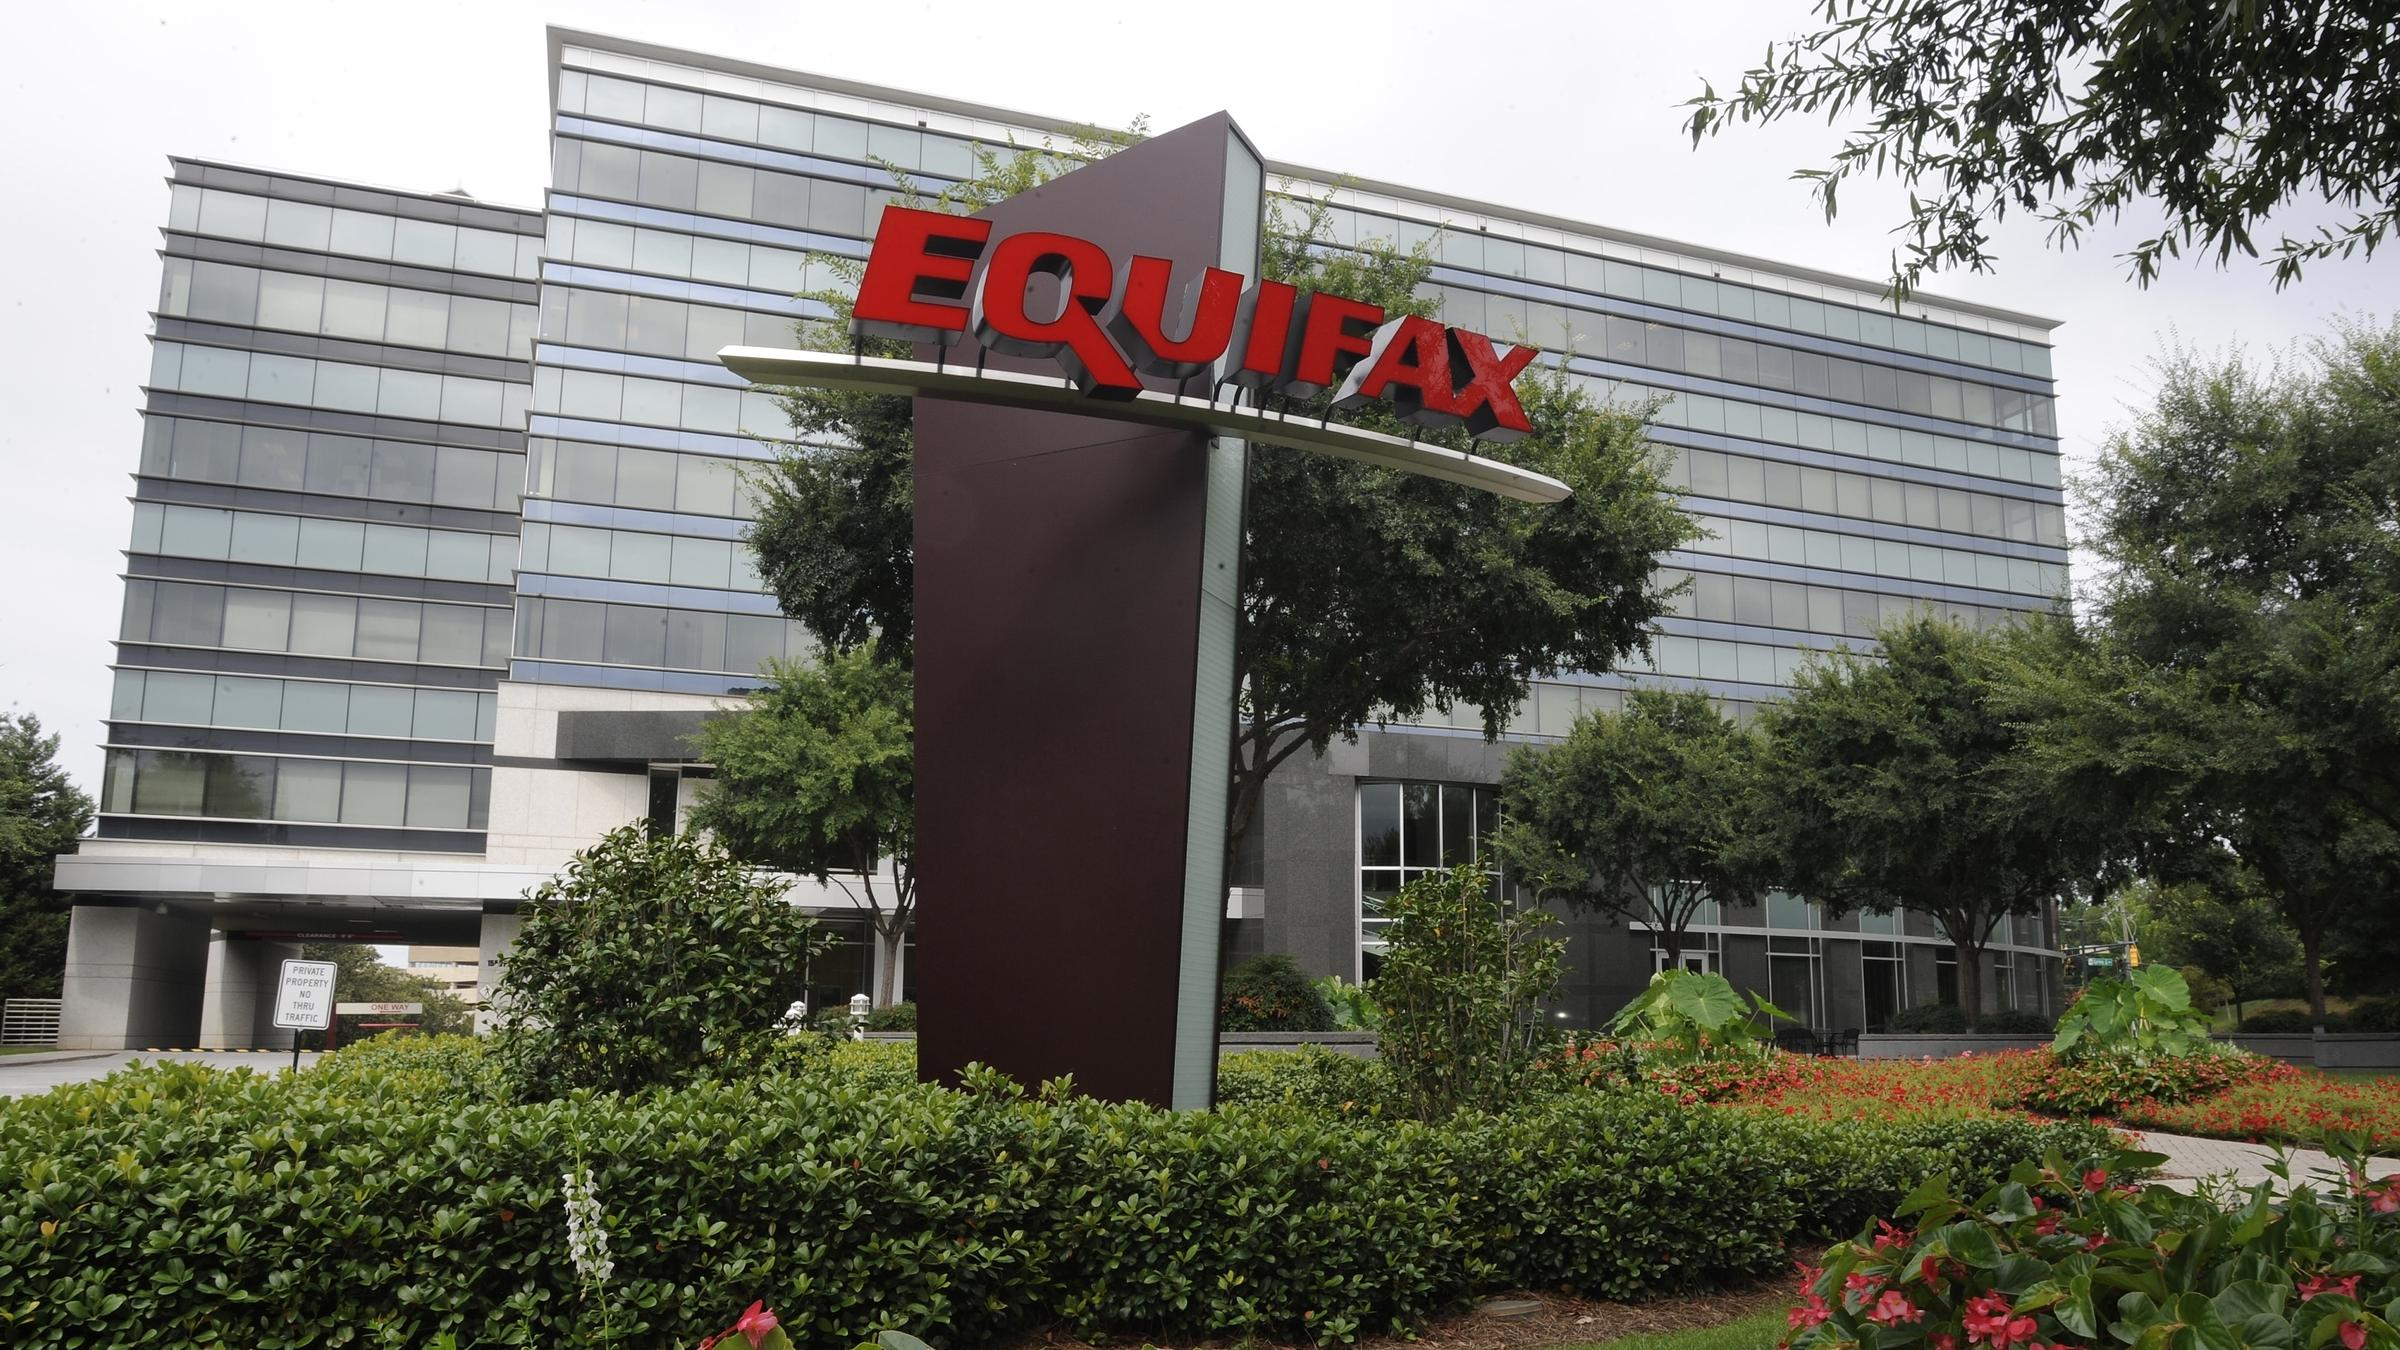 Equifax Continues To Scramble After Massive Breach